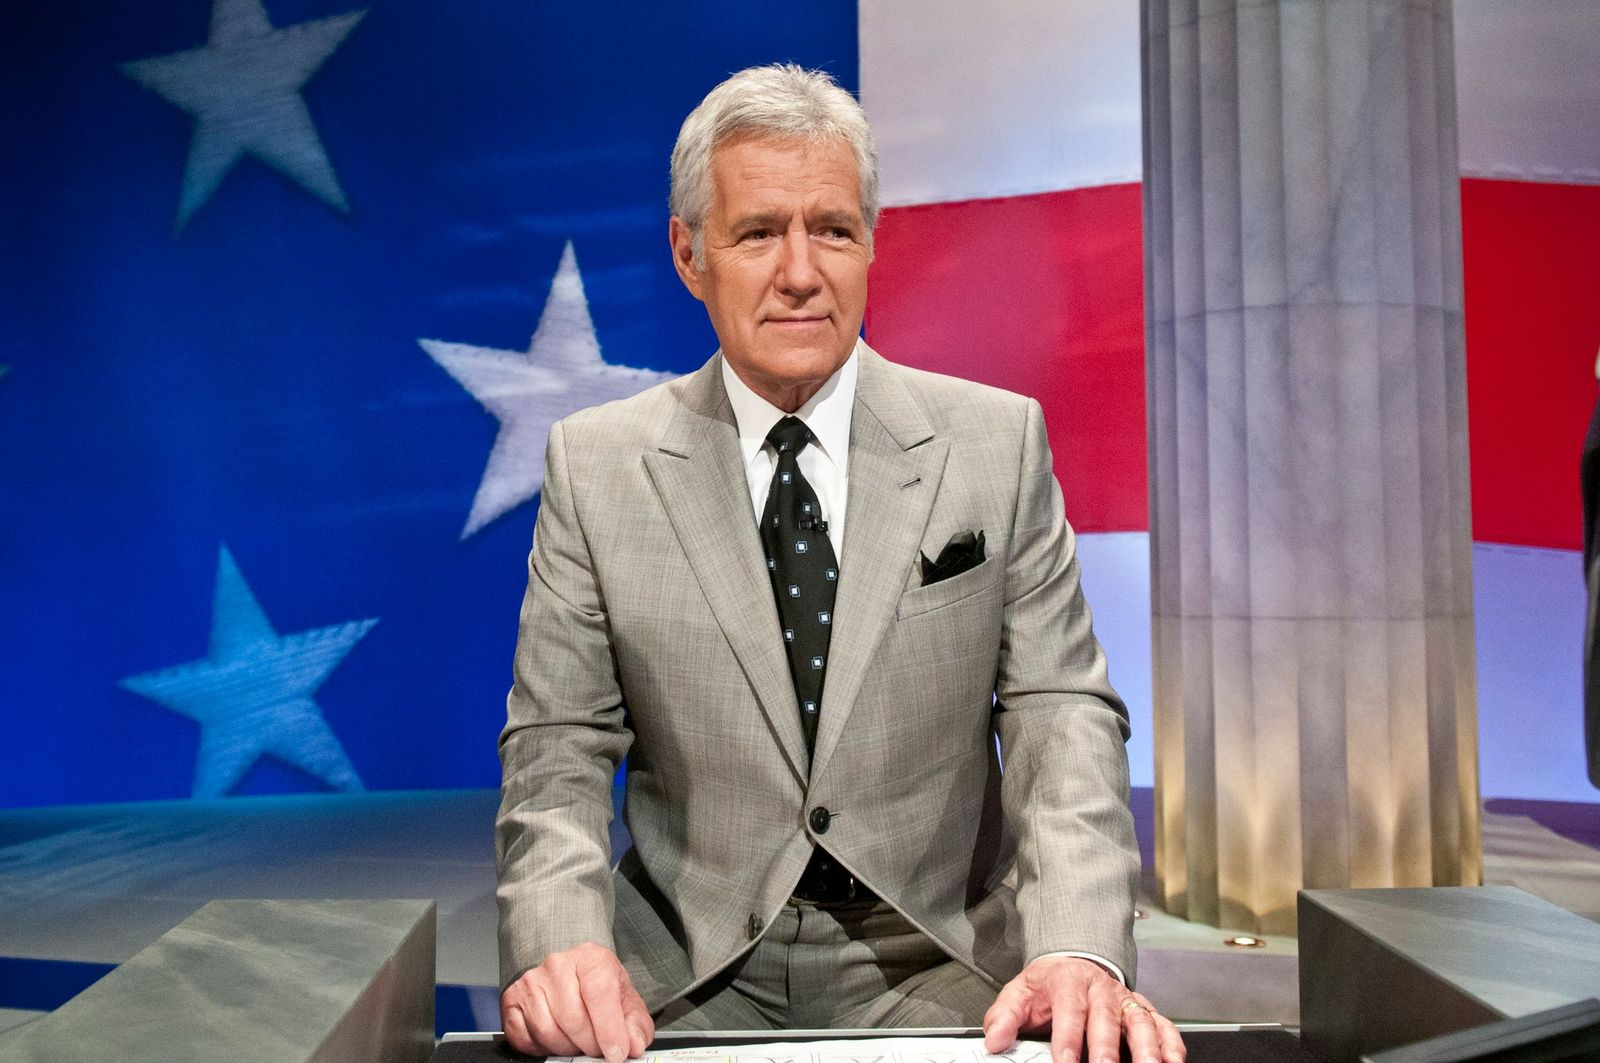 Alex Trebek at a rehearsal before a taping of Jeopardy! Power Players Week at DAR Constitution Hall on April 21, 2012 | Photo: Getty Images